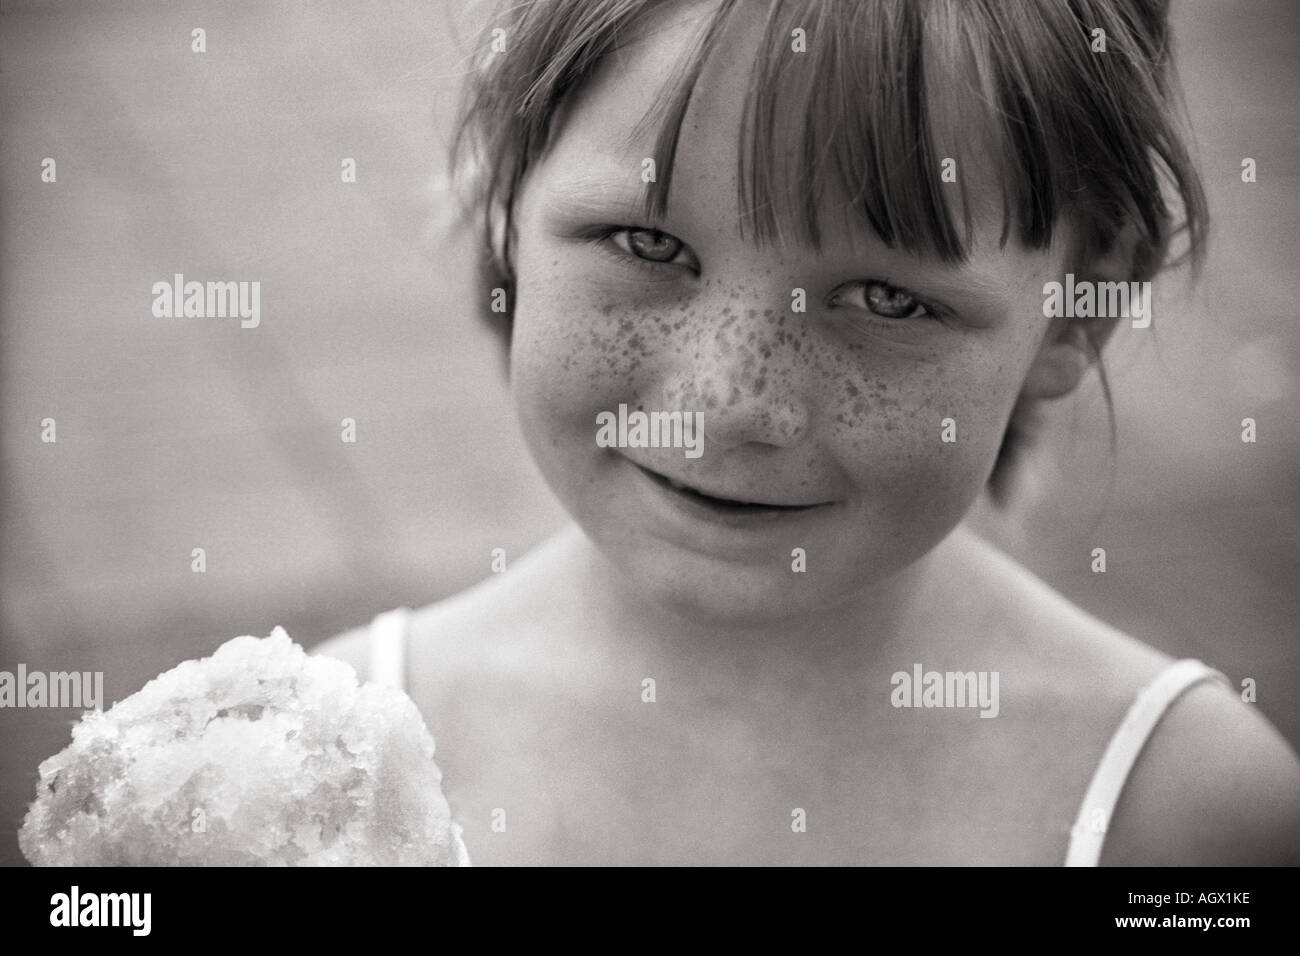 Close up of a freckle faced girl with snow cone. - Stock Image